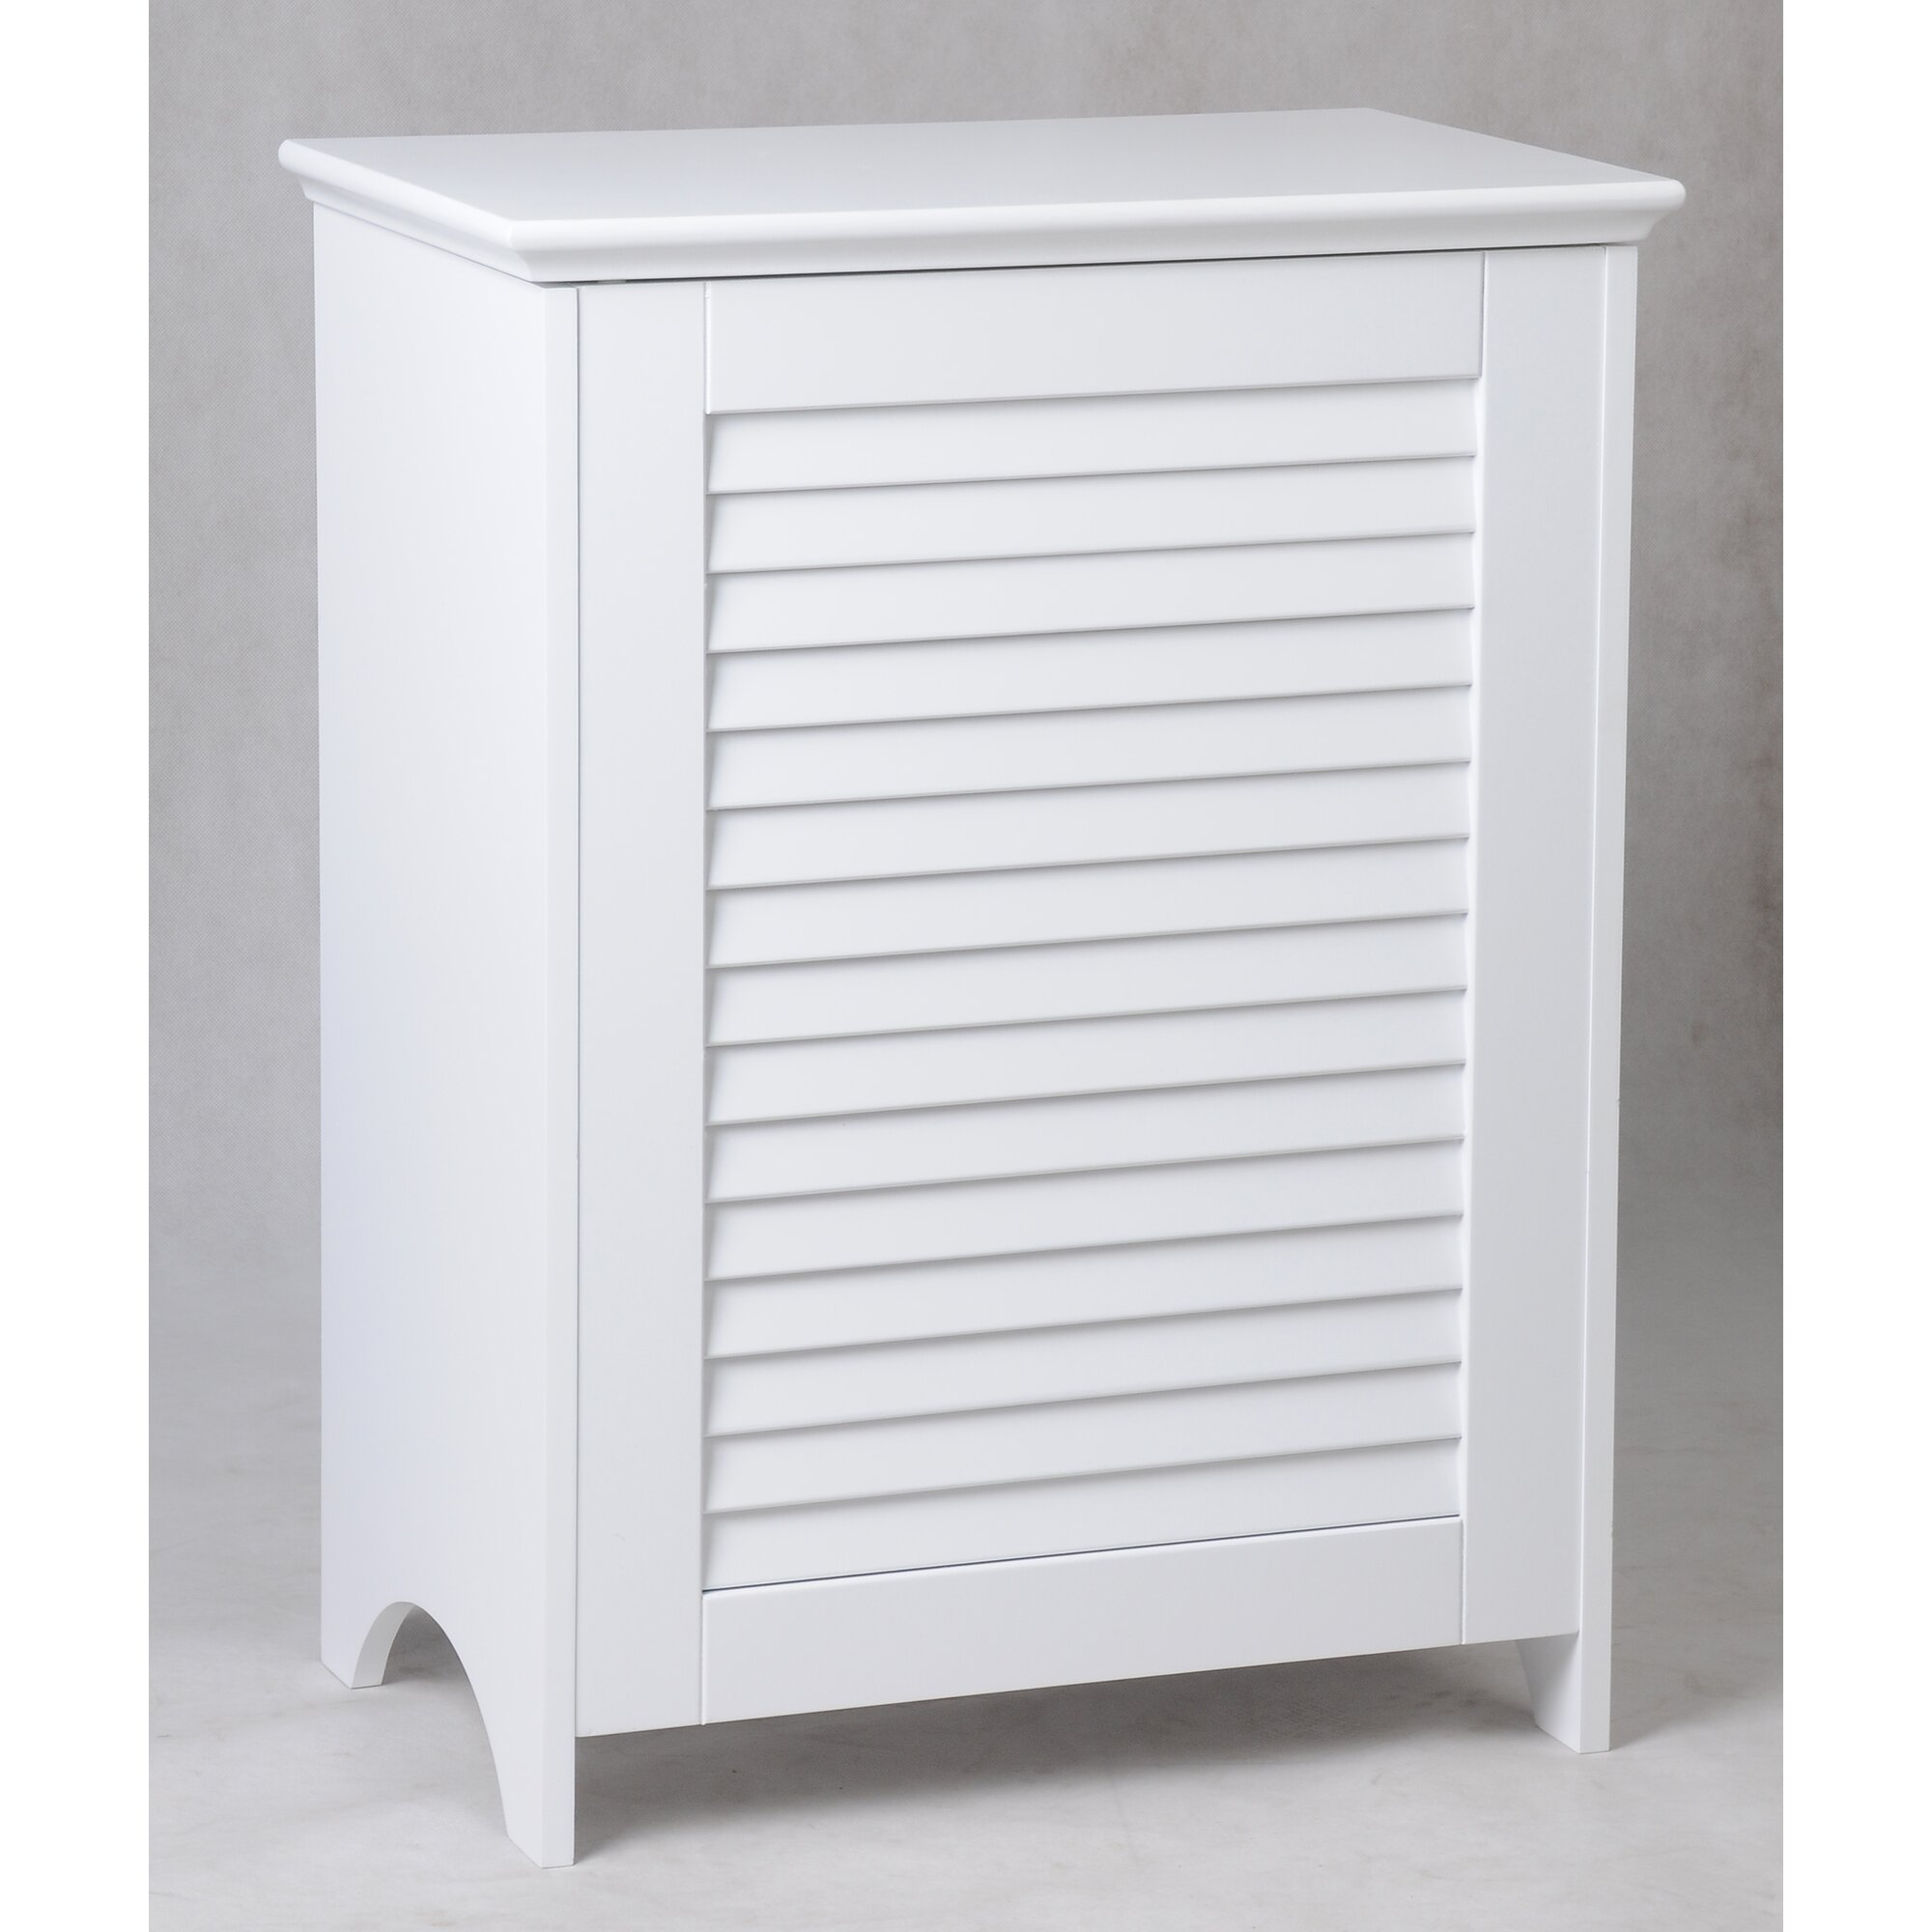 Trendy Louvered Front Cabinet Laundry Hamper With Built In Laundry Hamper  Interesting Builtin